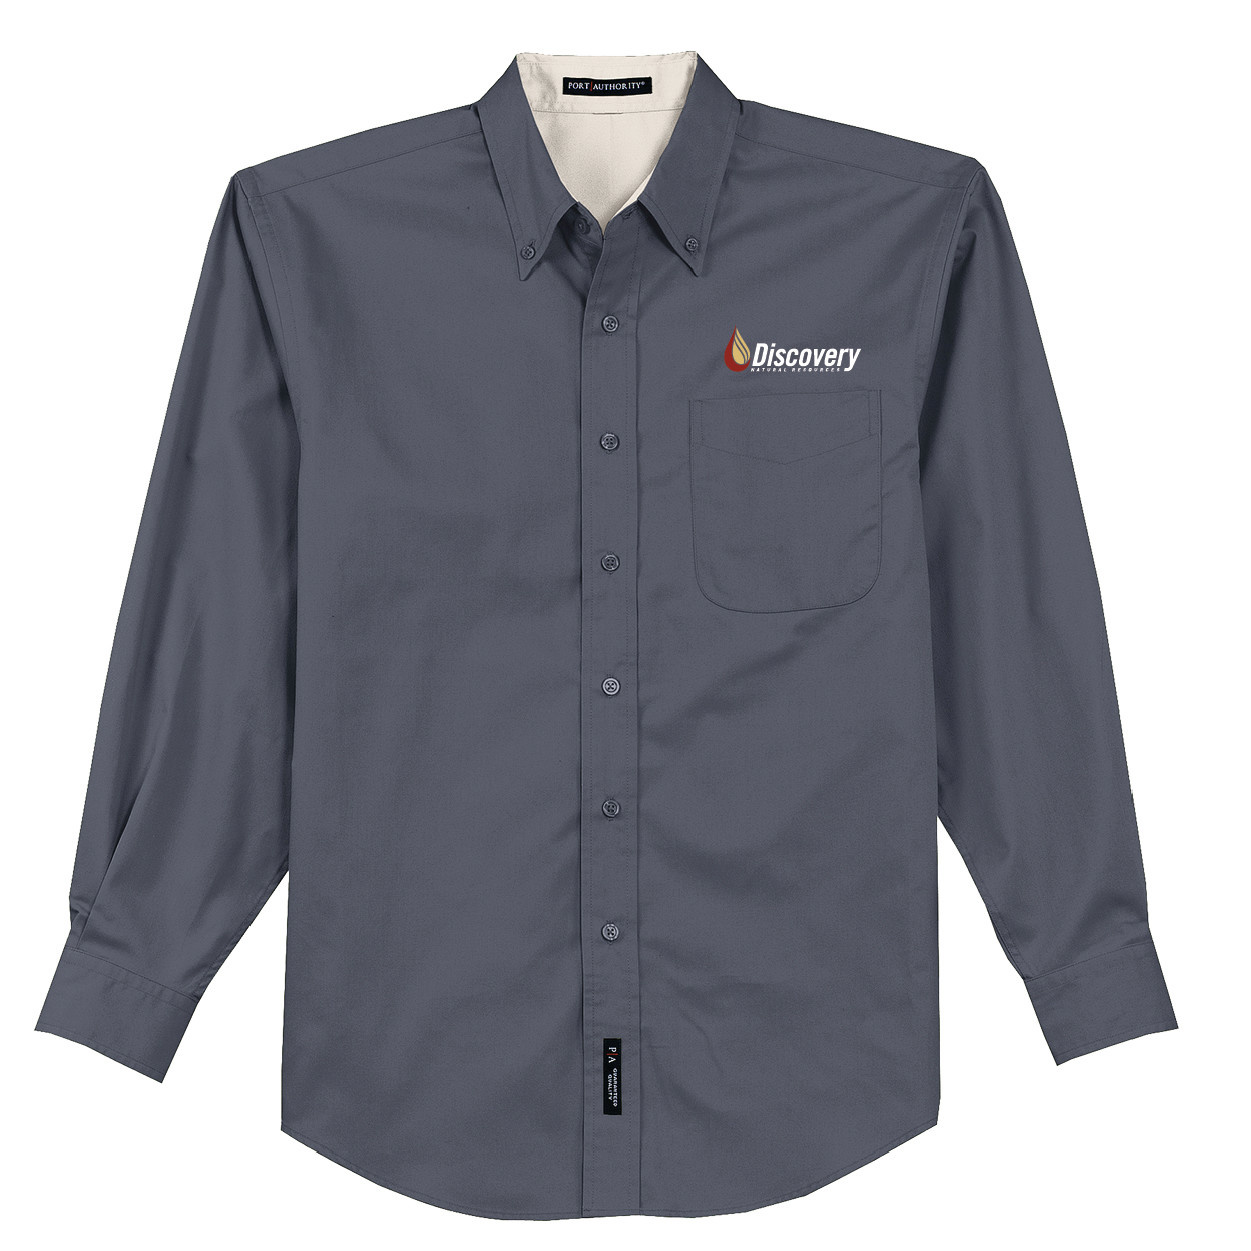 Port Authority Port Authority Long Sleeve Easy Care Shirt (Steel Grey/Light Stone)